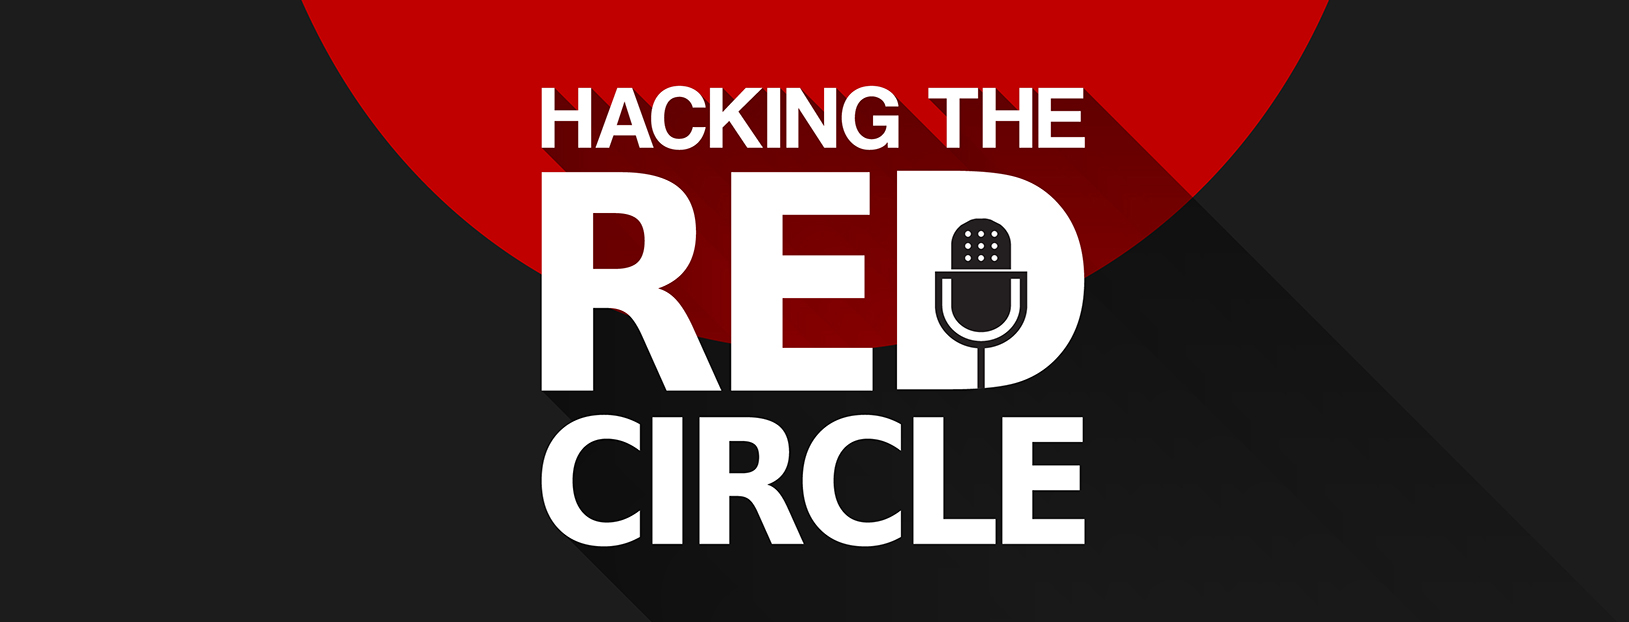 Hacking the Red Circle